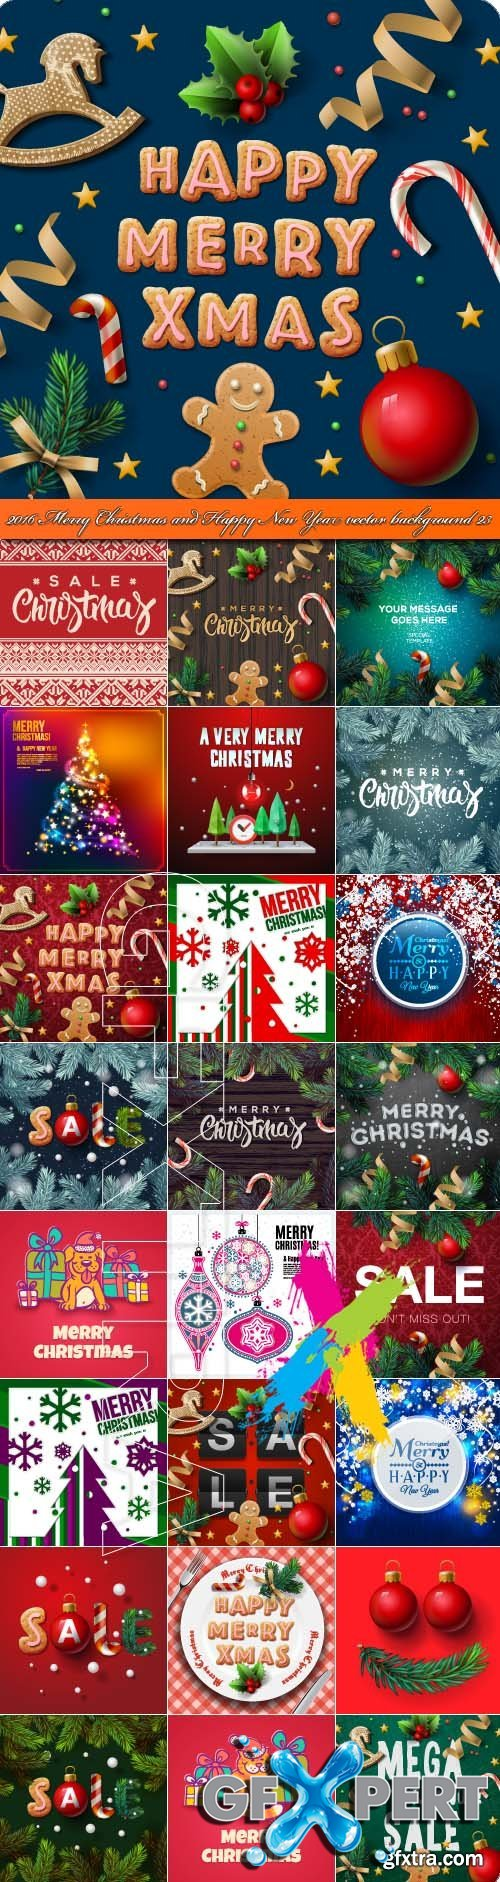 2016 Merry Christmas and Happy New Year vector background 23